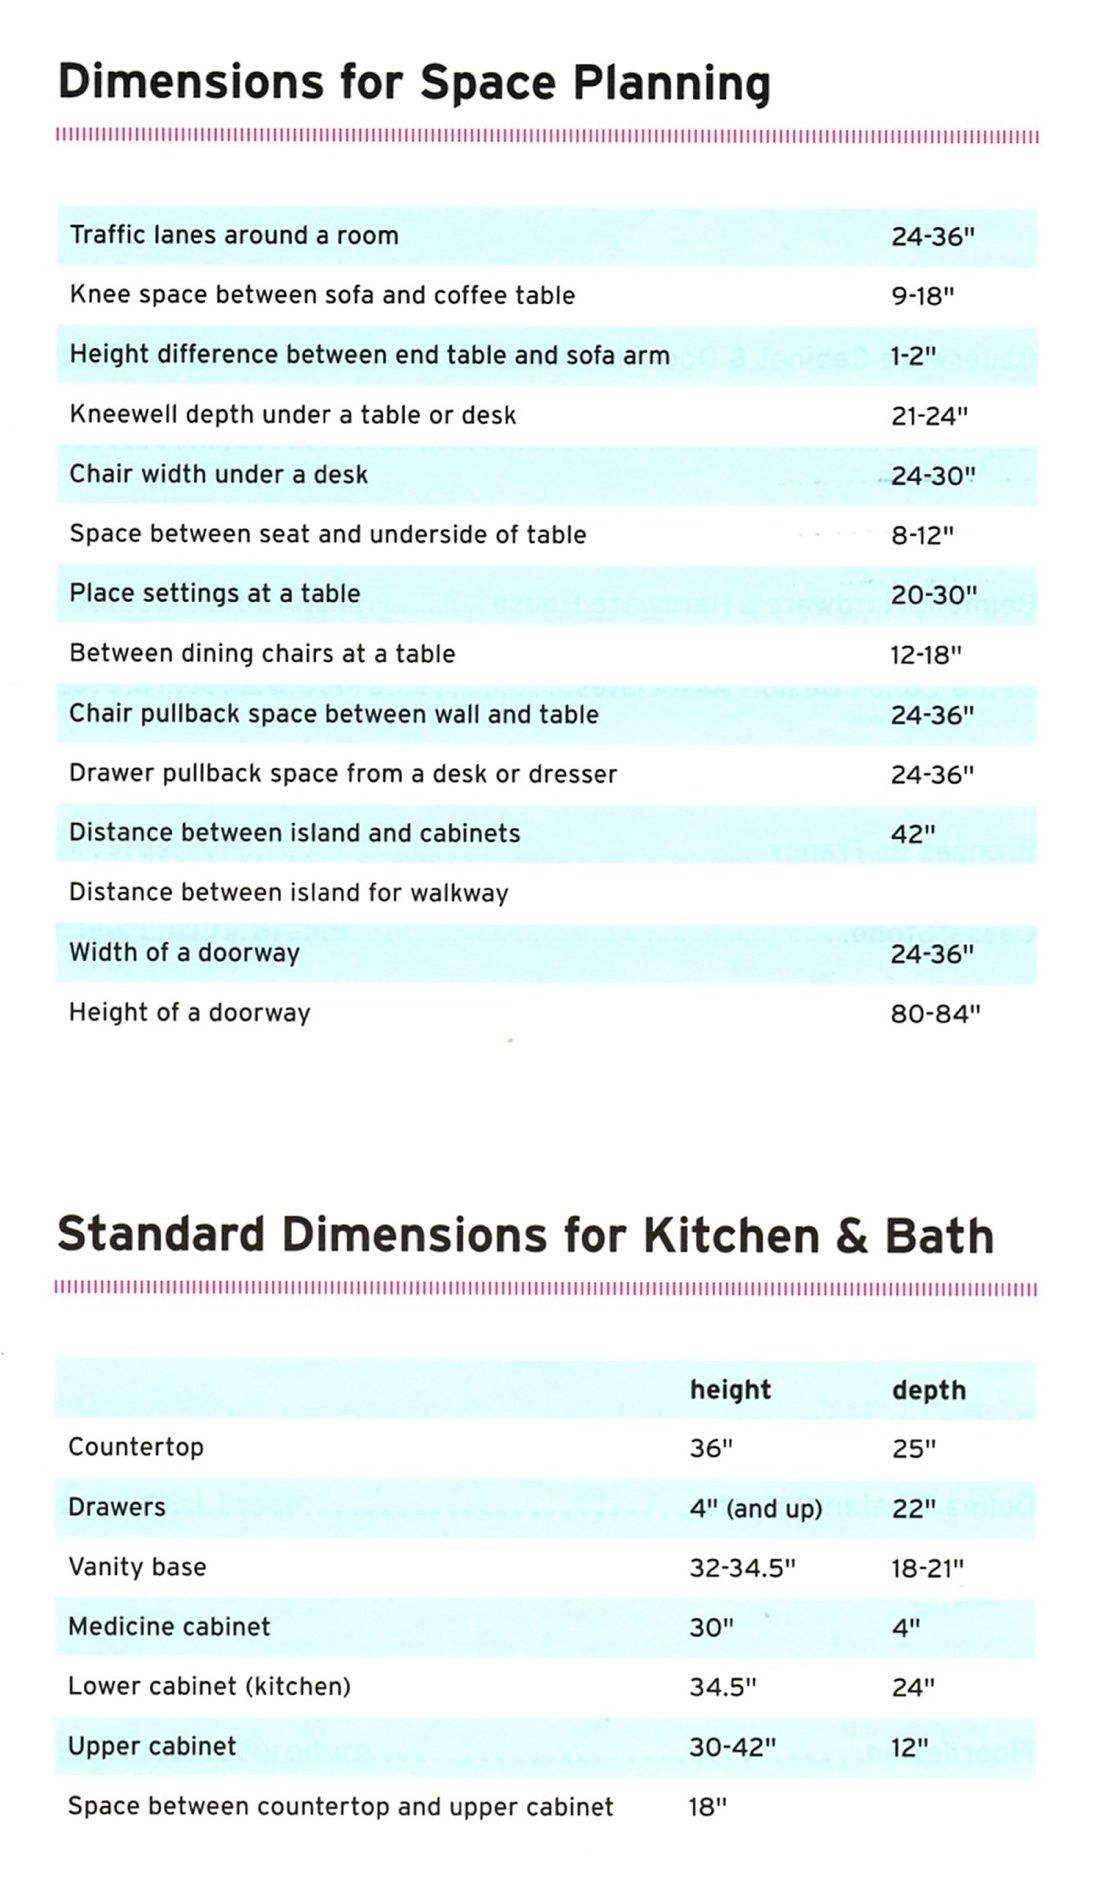 Google Image Result For Http Www Decoratour Com Wp Content Uploads 2011 11 Kitch Bath 2 Jp Interior Design Tips Kitchen Cabinet Layout Interior Design Styles